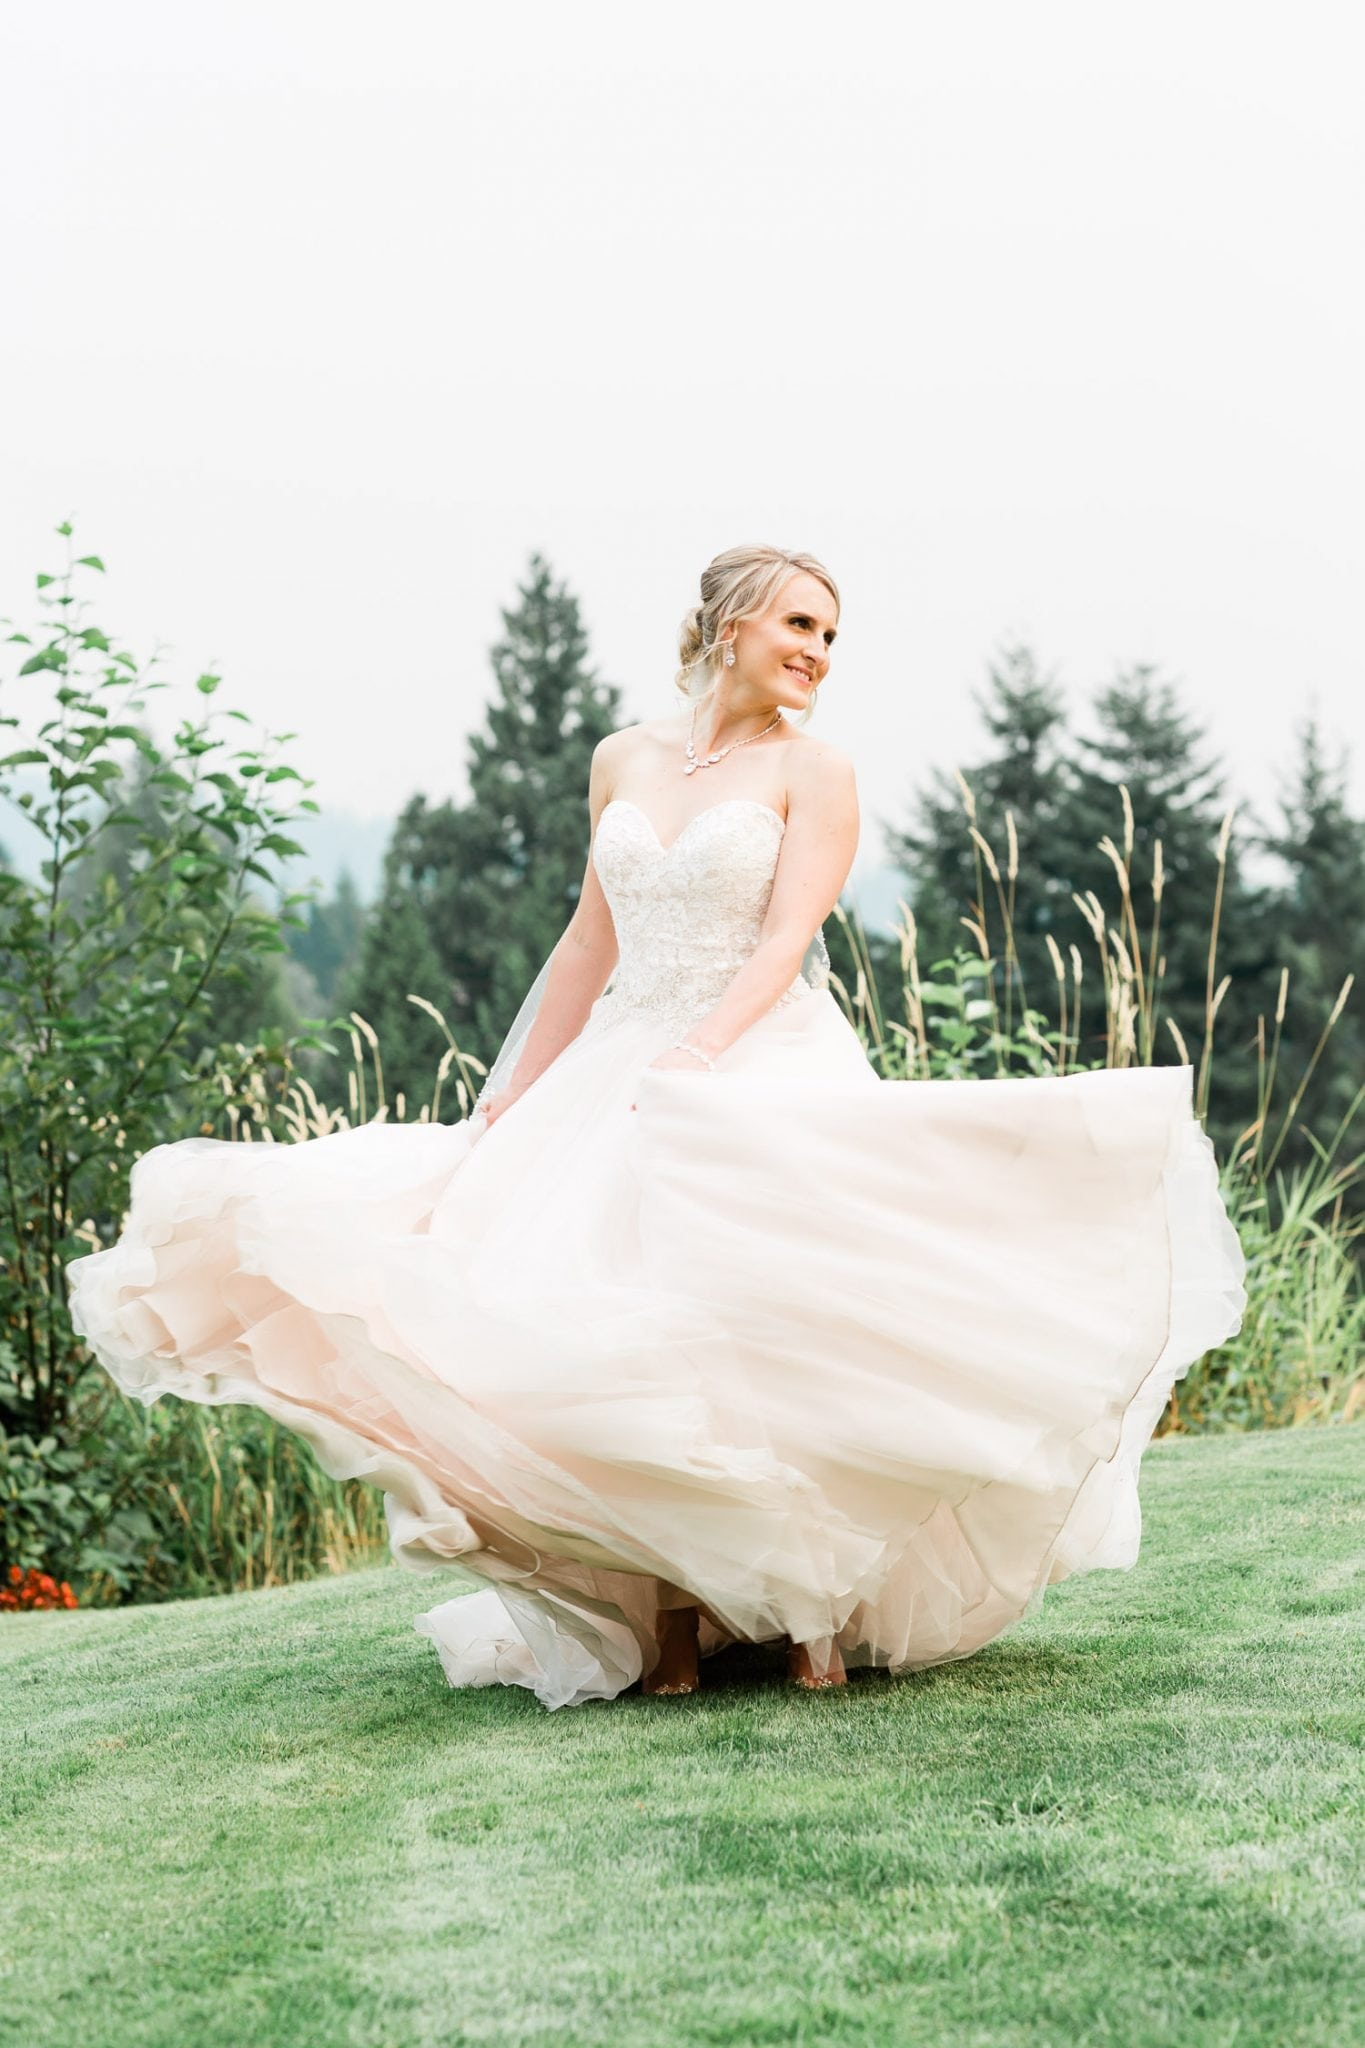 Bride portrait dancing on the grass | Vancouver wedding photographer | Westwood Plateau Golf Club Wedding